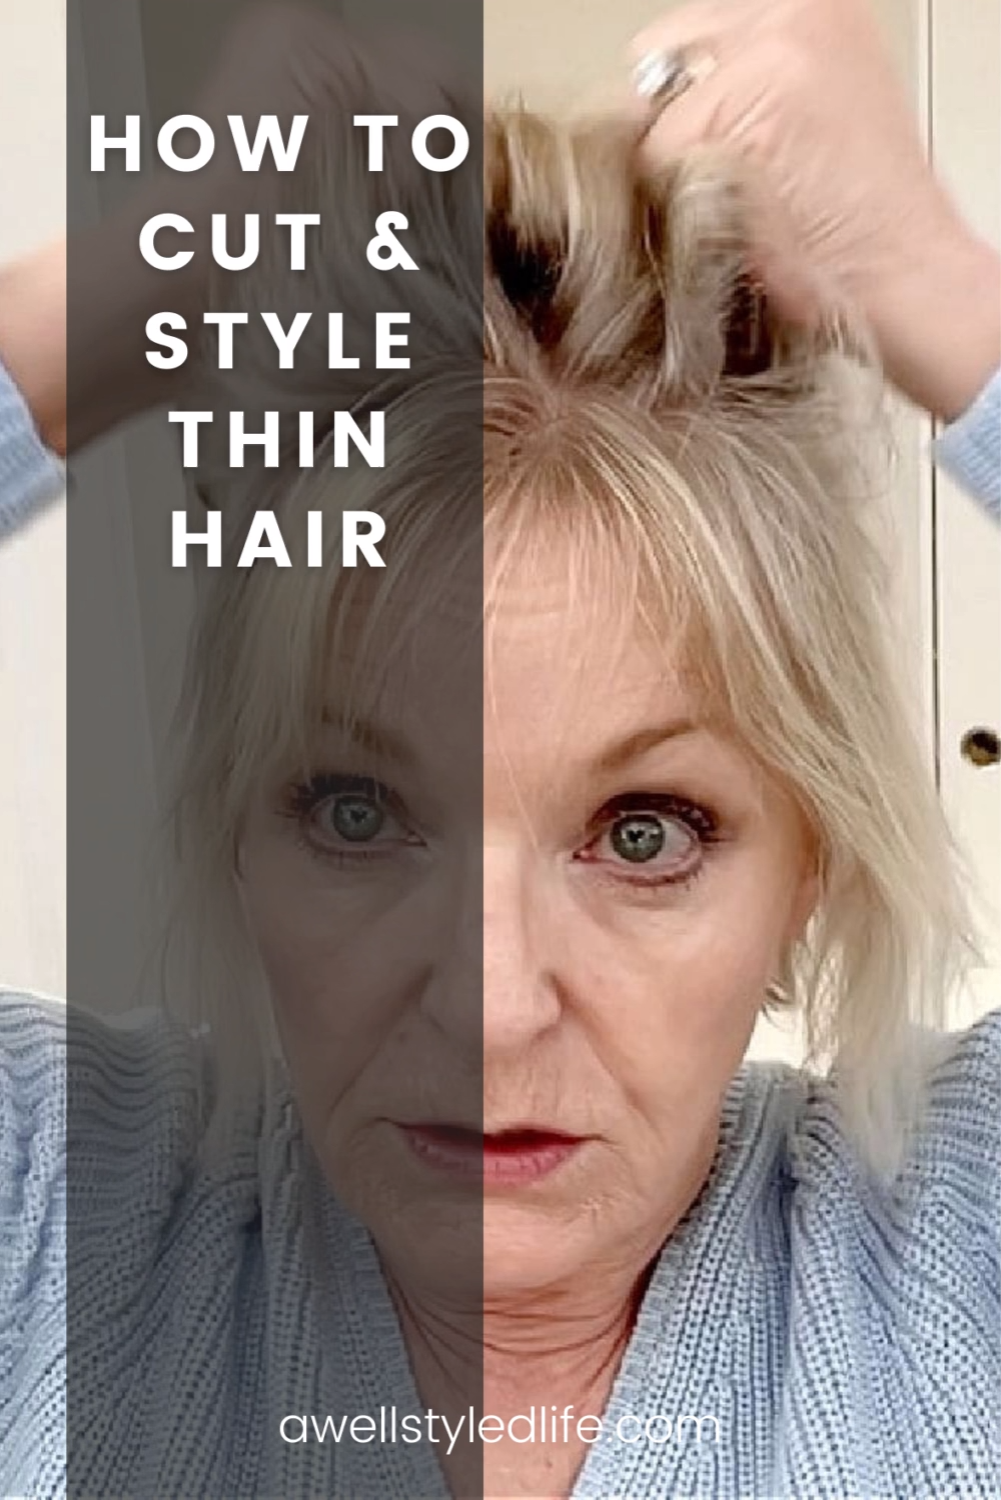 How to Cut and Style Thin Hair